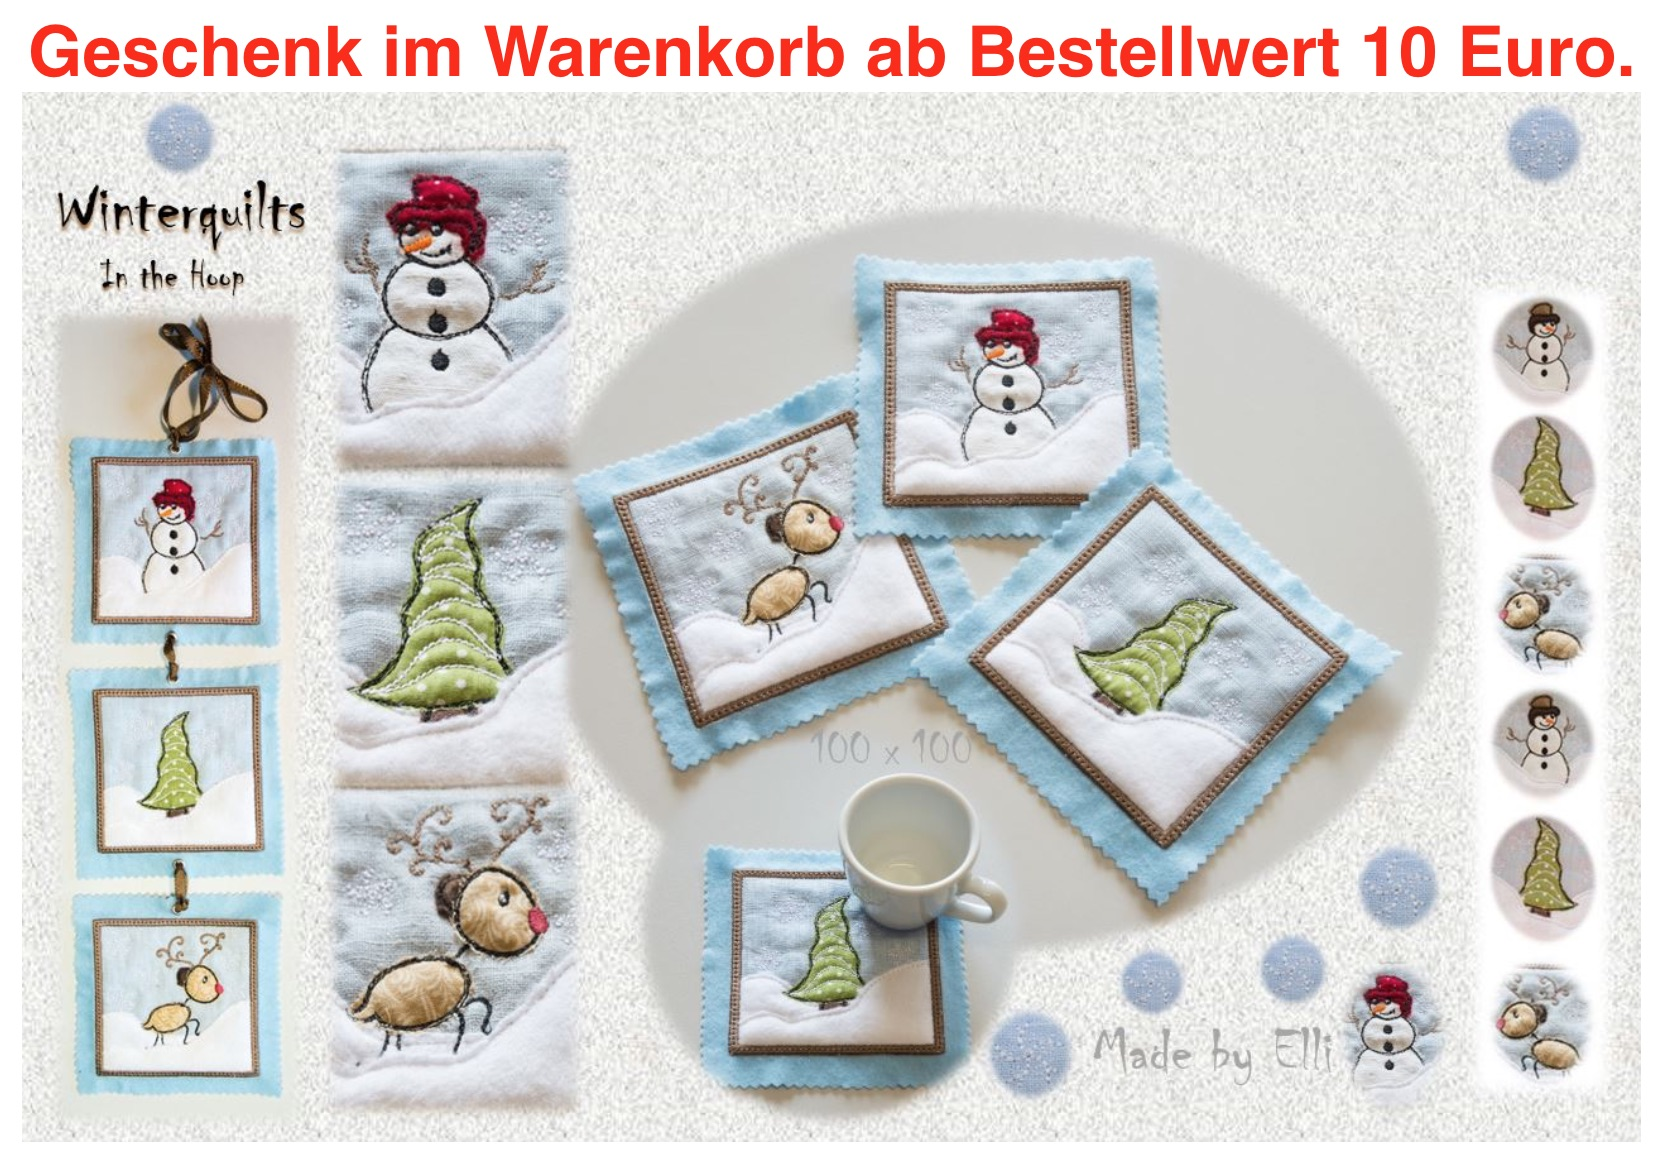 GiK Winterquilts